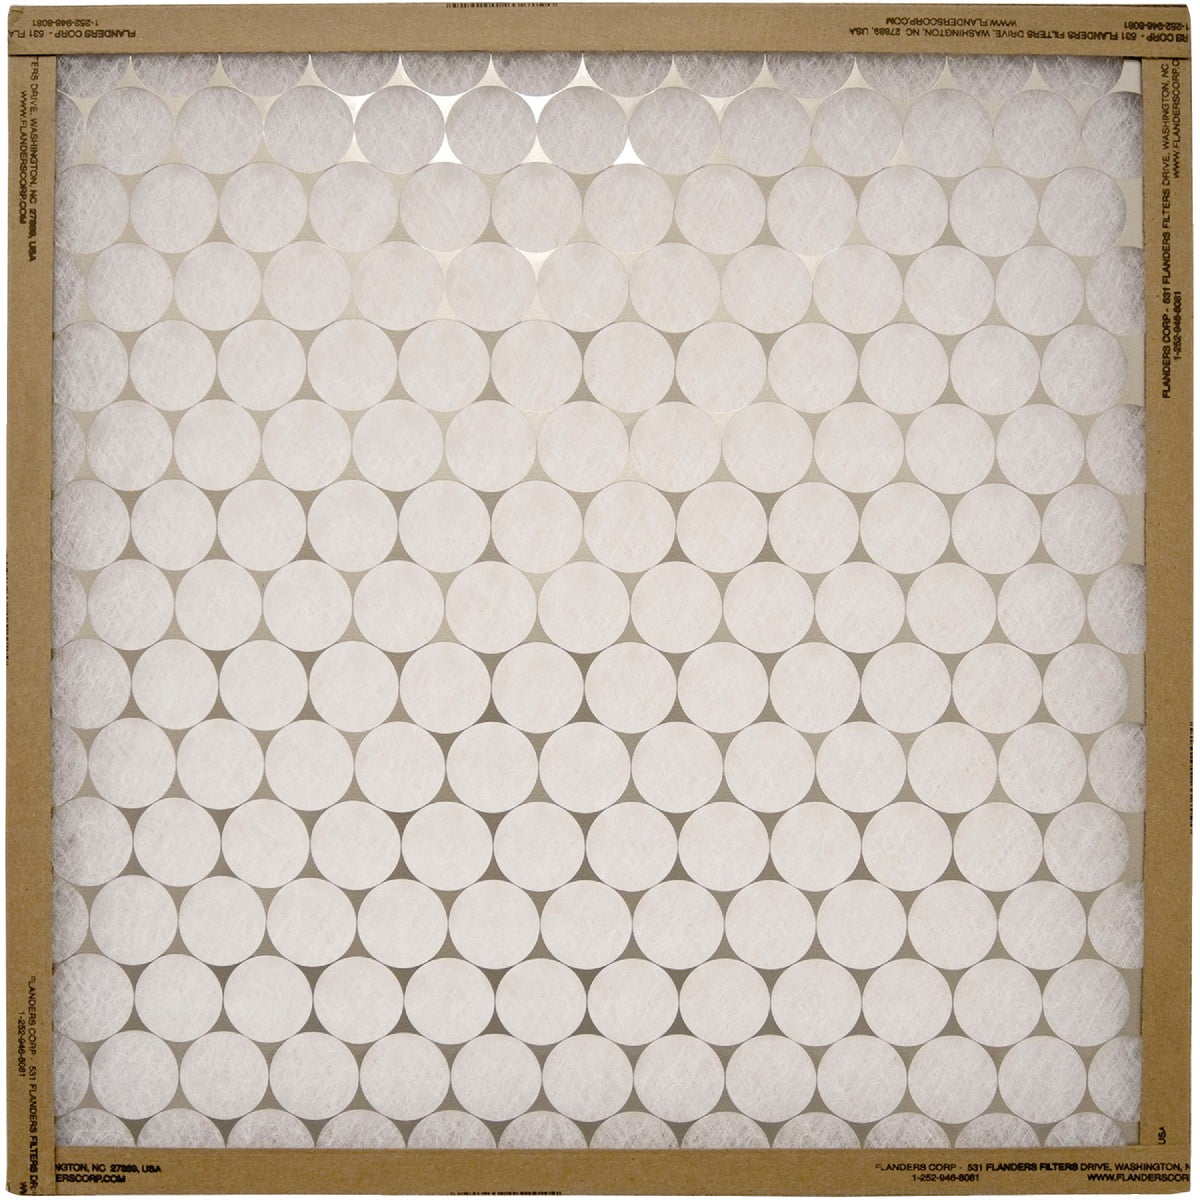 16X25 FURNACE FILTER - 10255.011625 by Flanders Corp